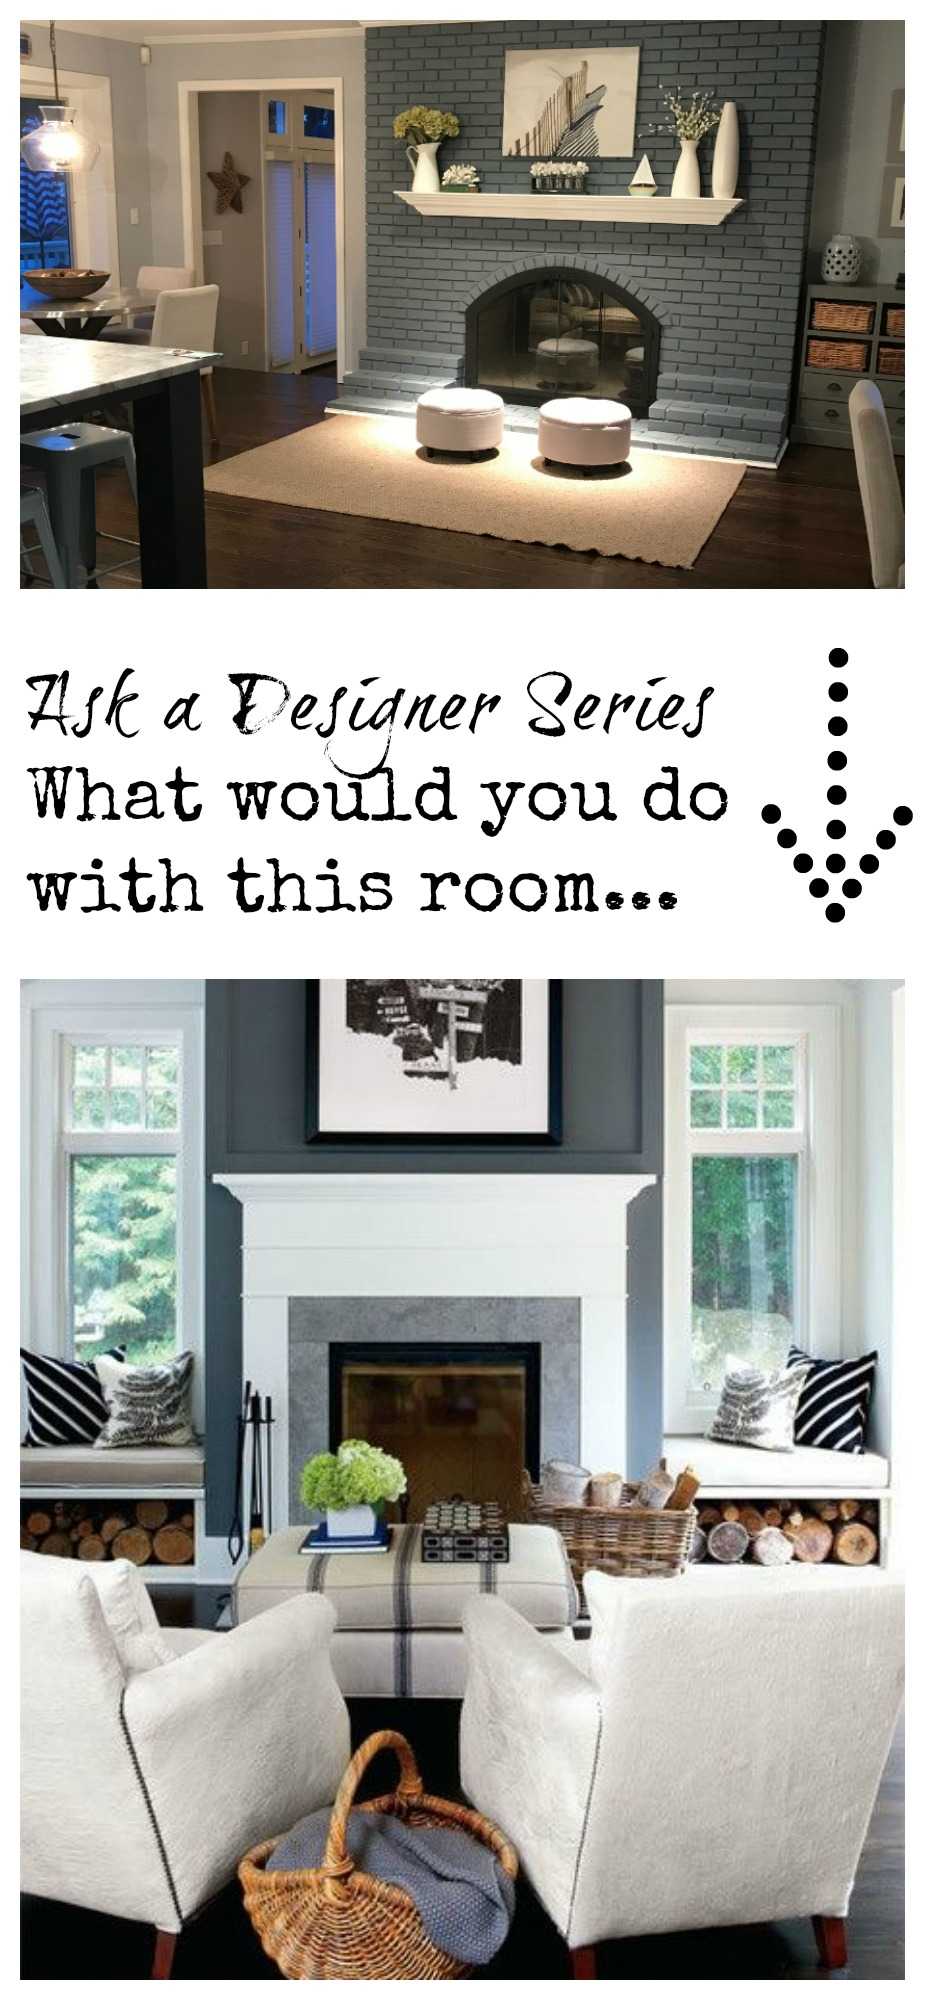 Ask A Desinger Series- What would you do around my fireplace?